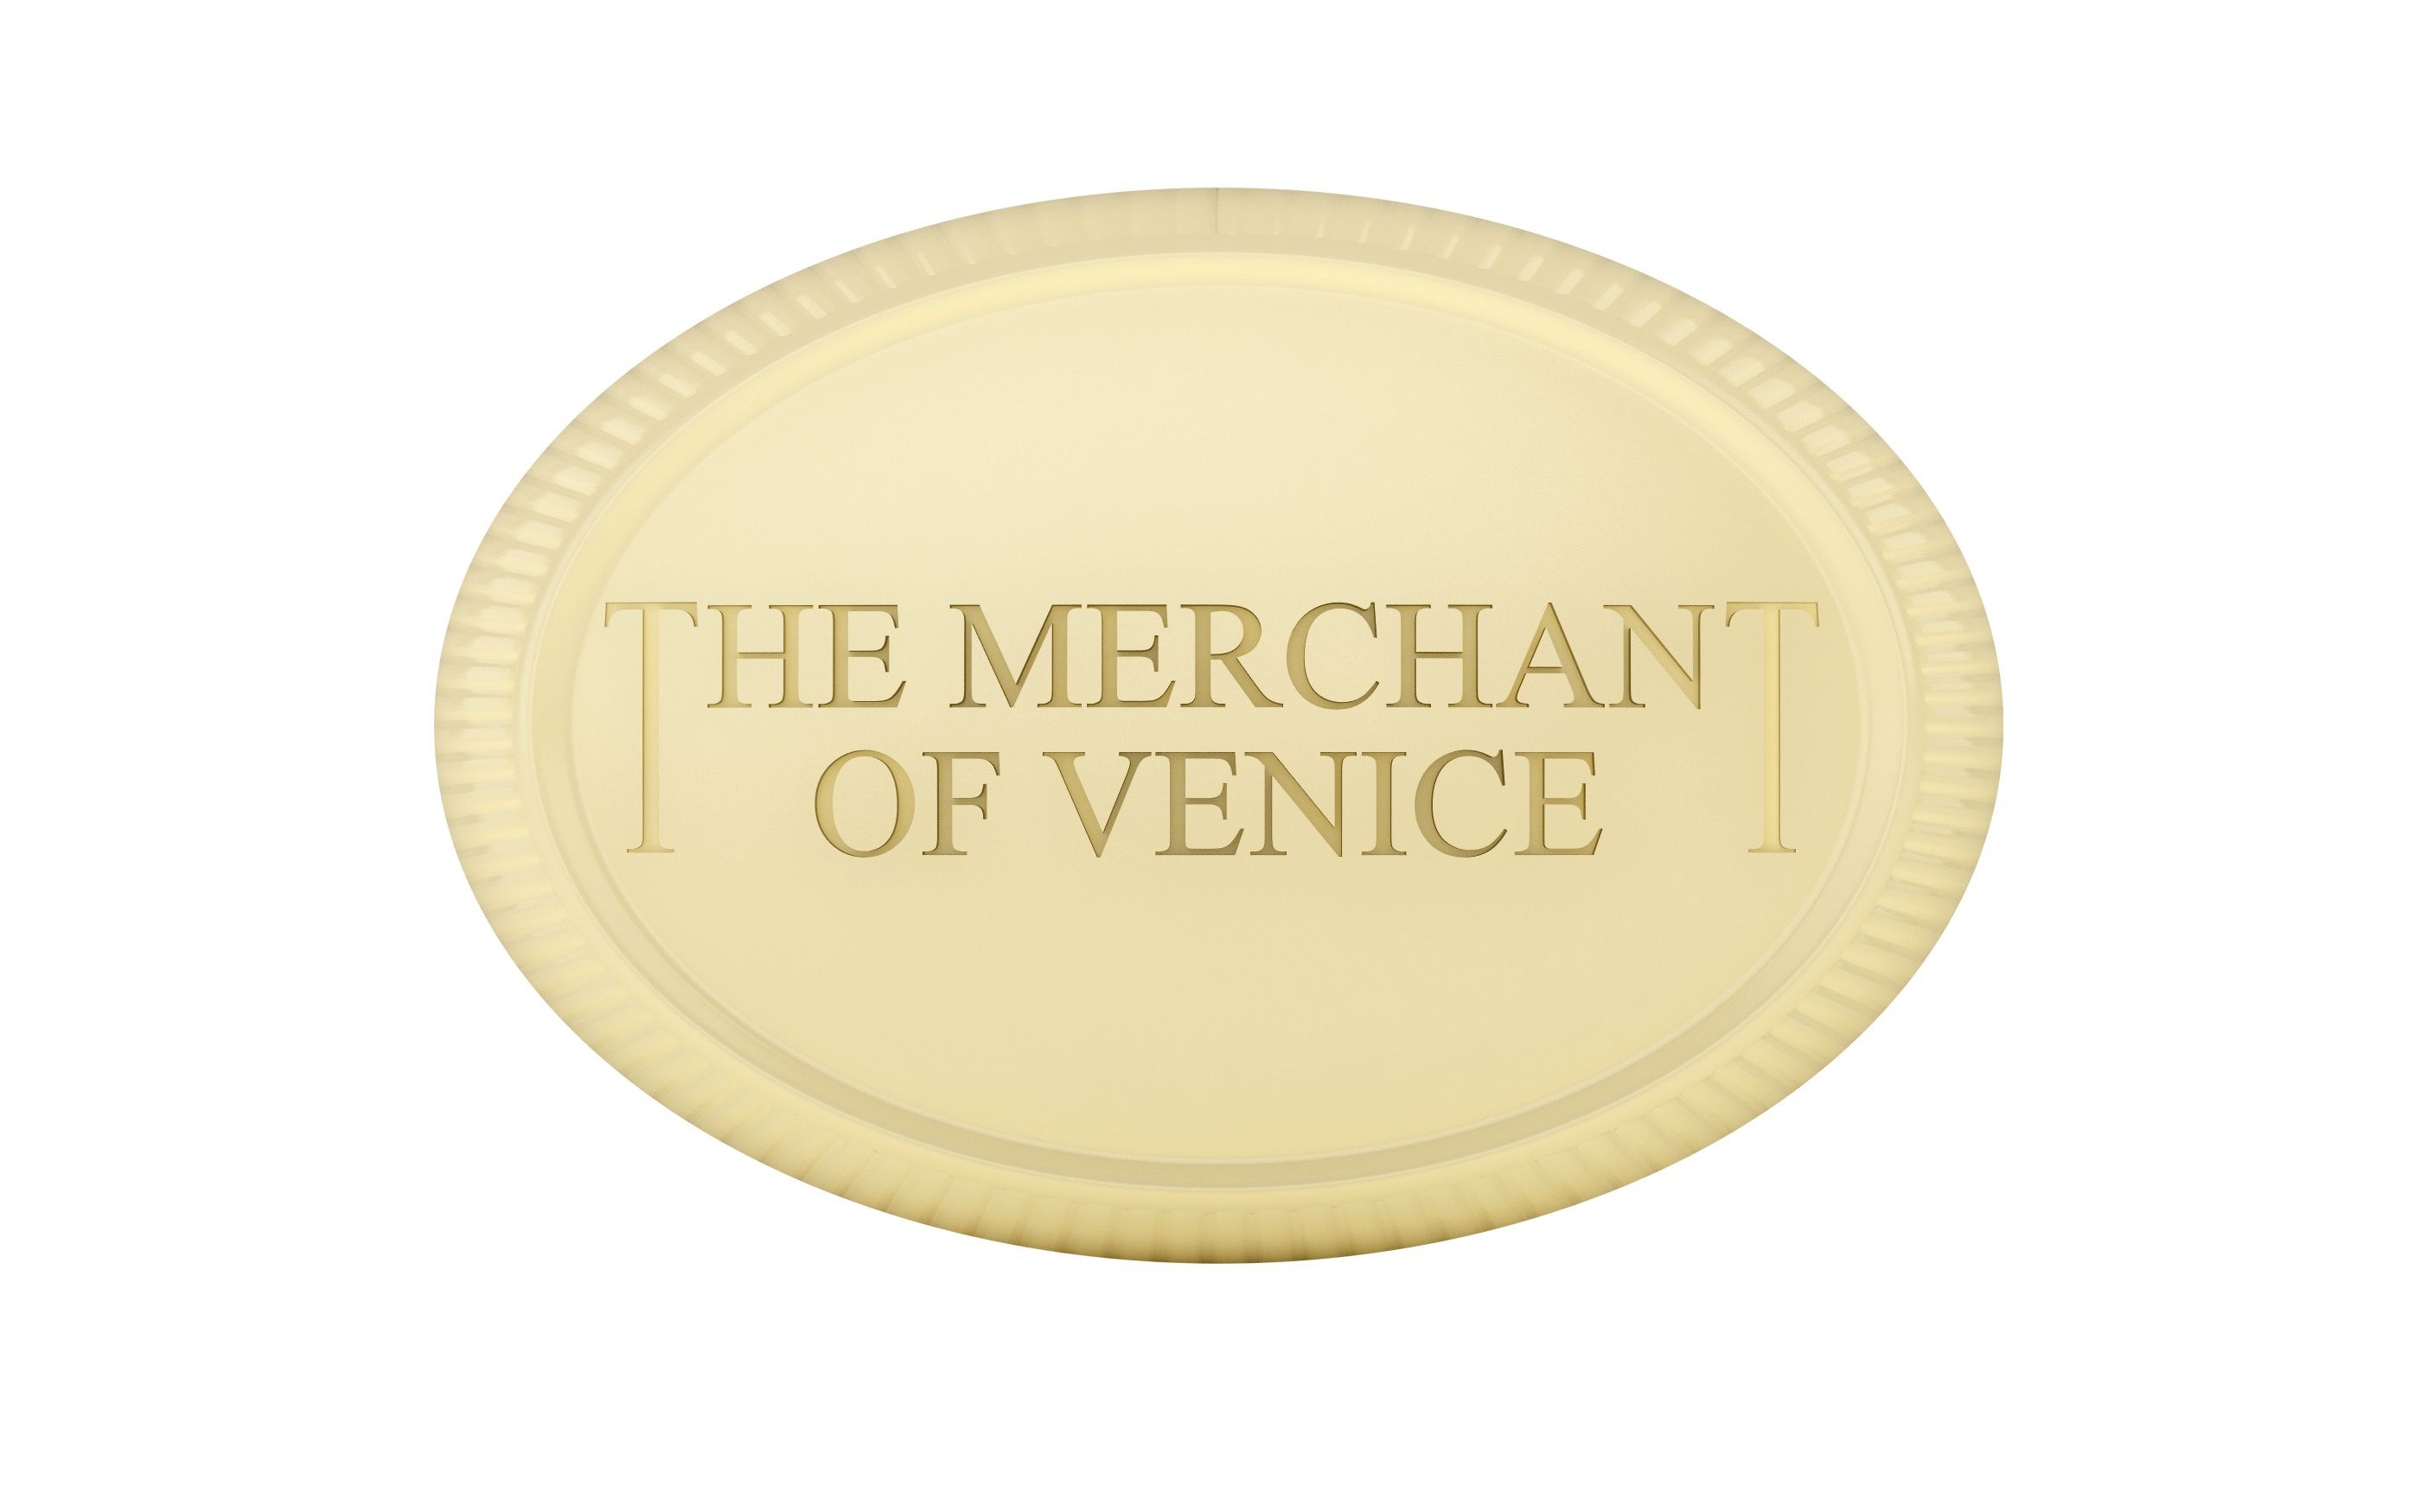 The Merchant Of Venice The Merchant Of Venice Asian Inspirations Luxury Soap 200g